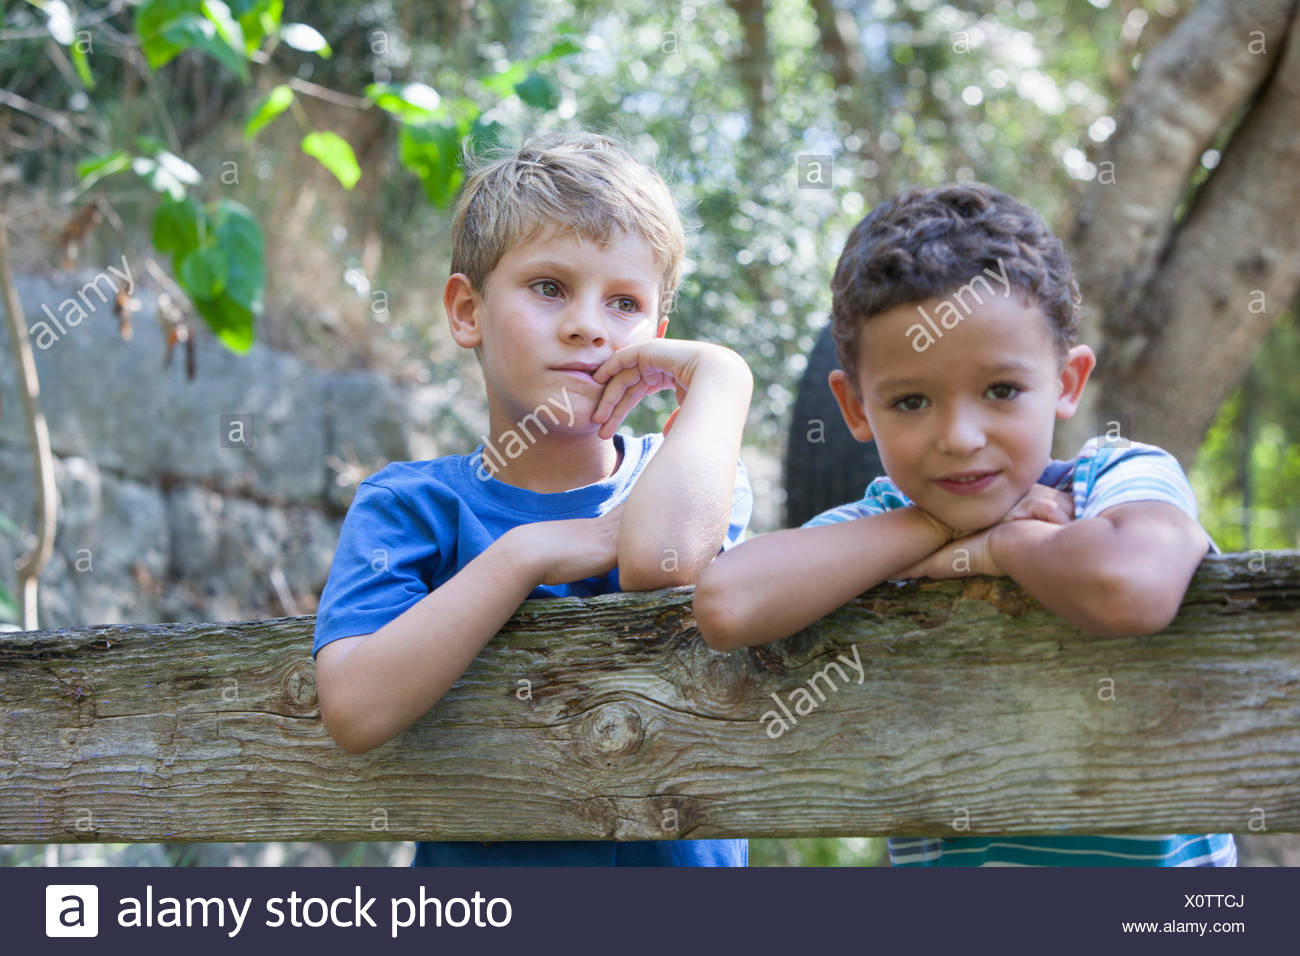 Portrait of two boys leaning on garden fence - Stock Image